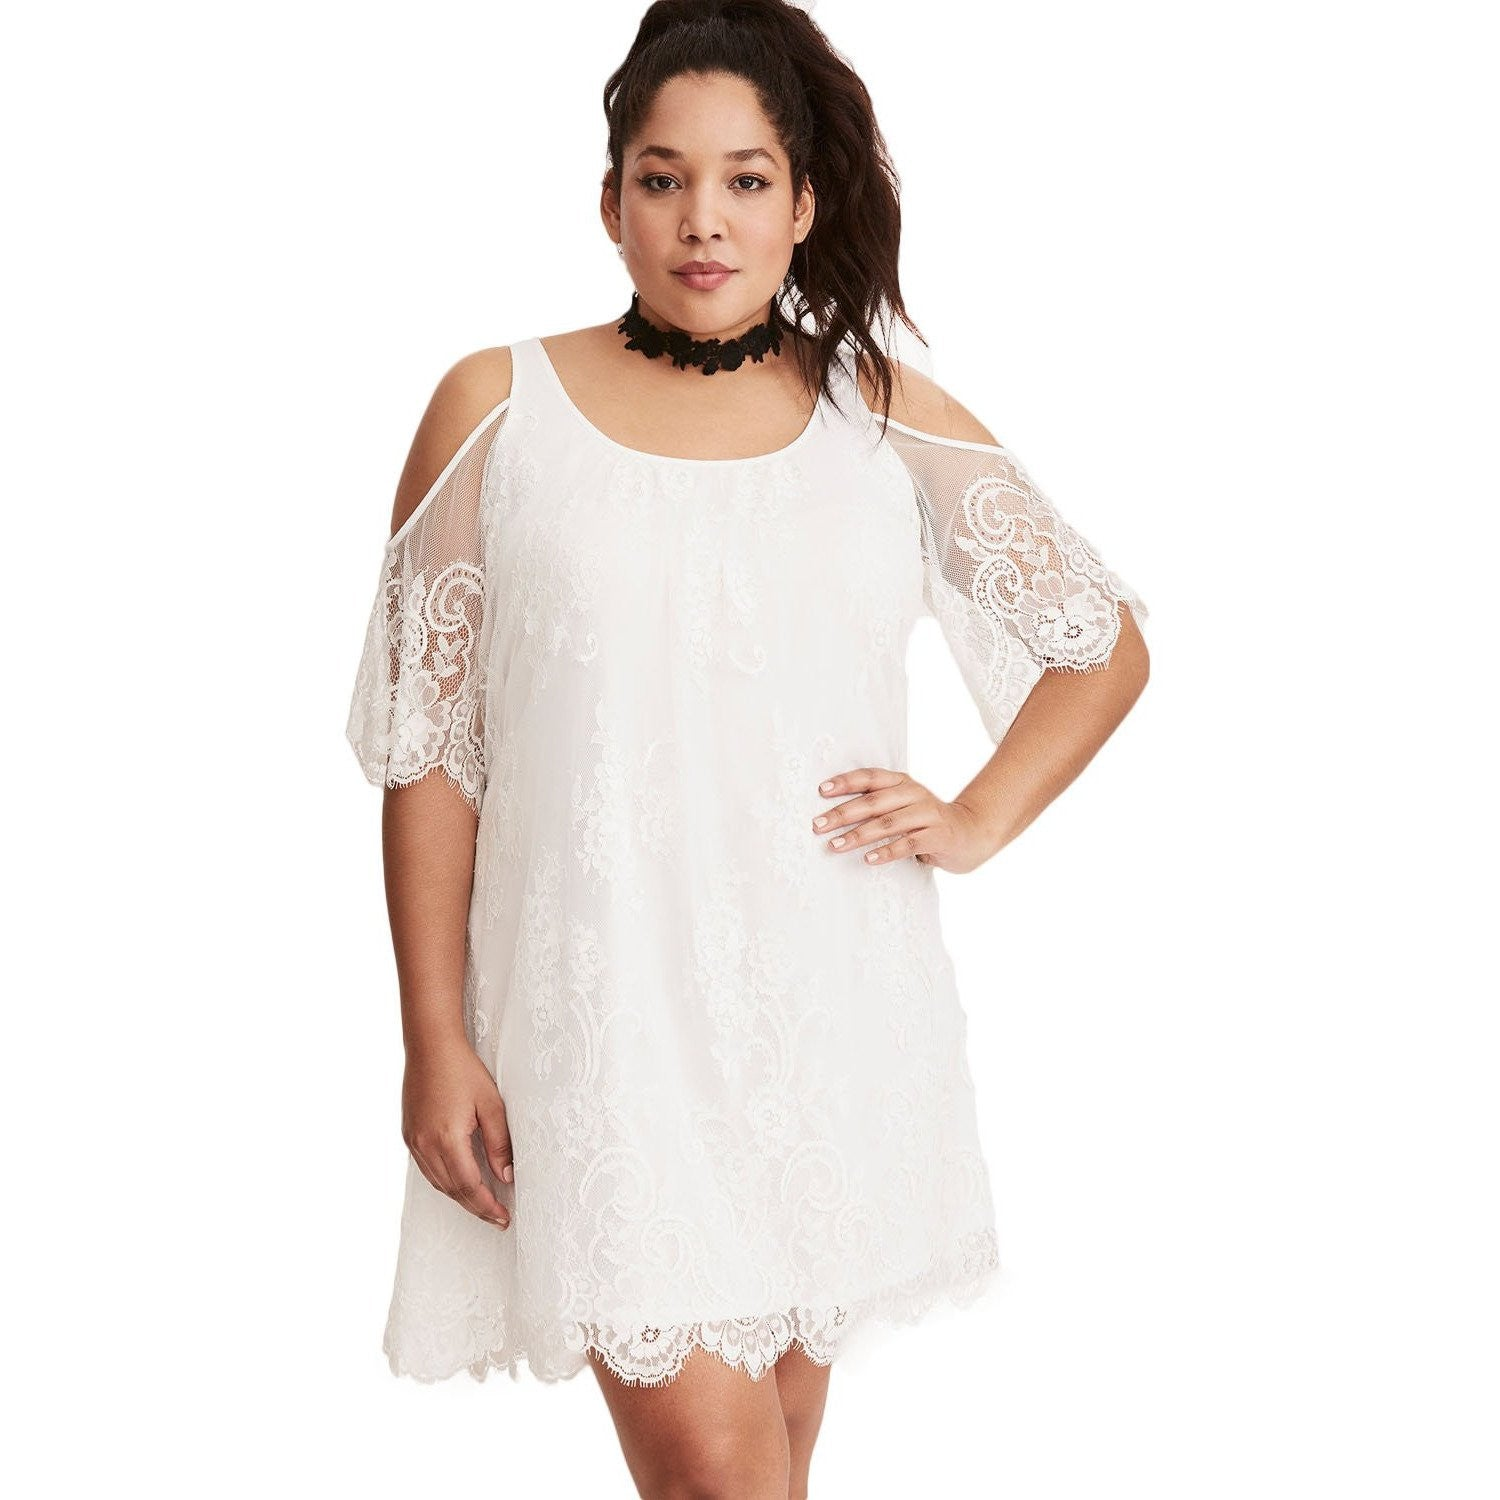 2de9c0e93ed White Plus Size Summer Dress - Mini Dress